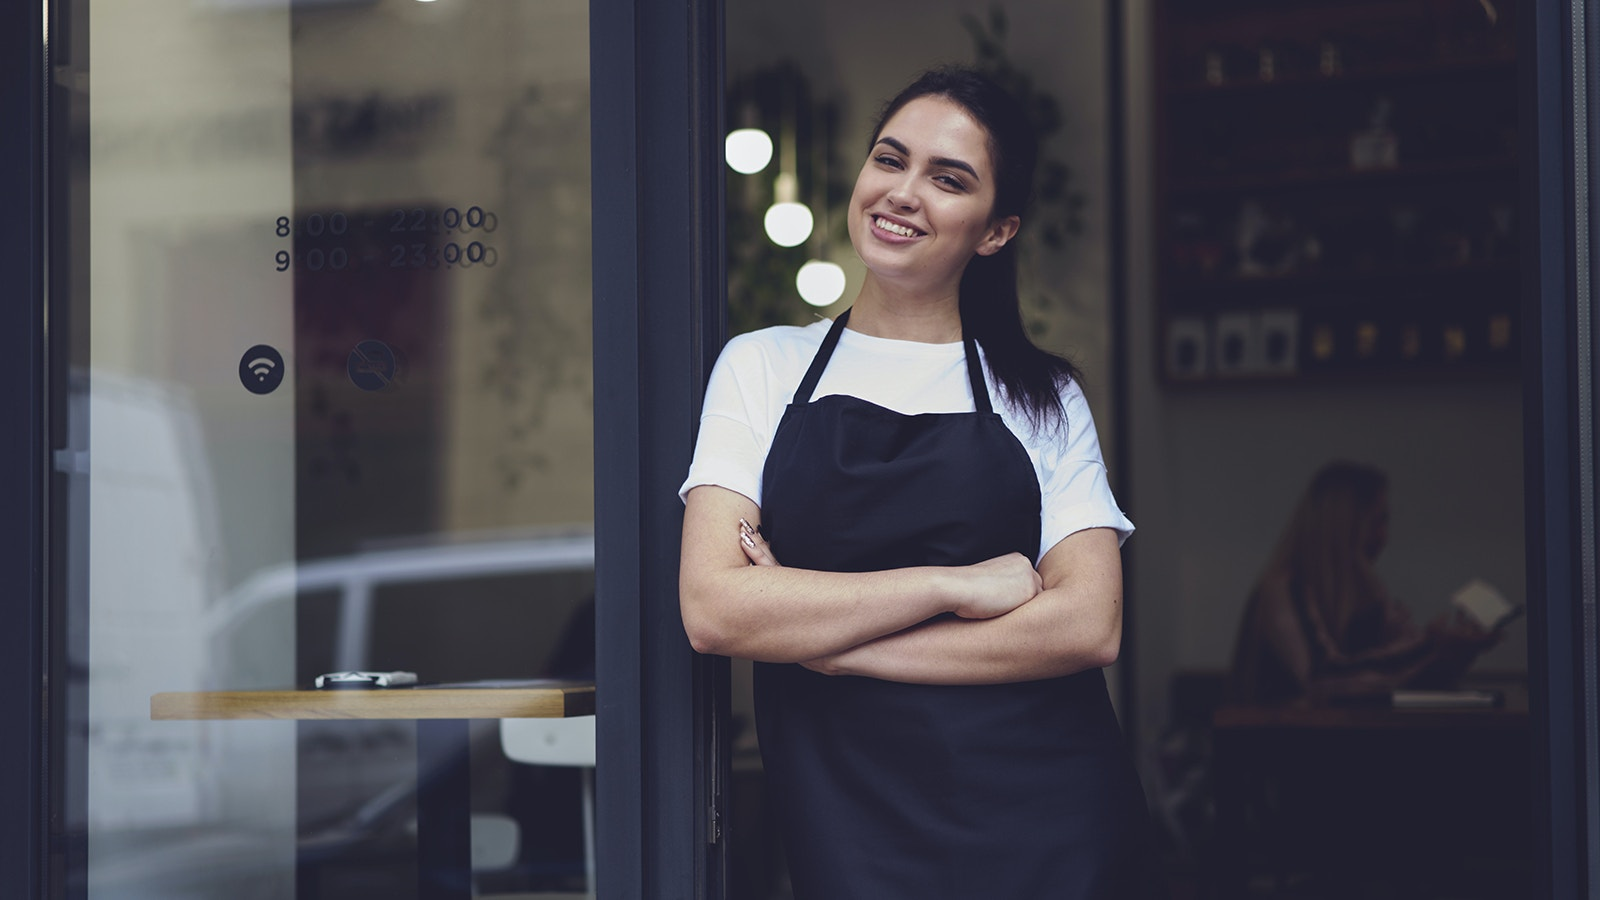 Waitress In Black Apron Upload